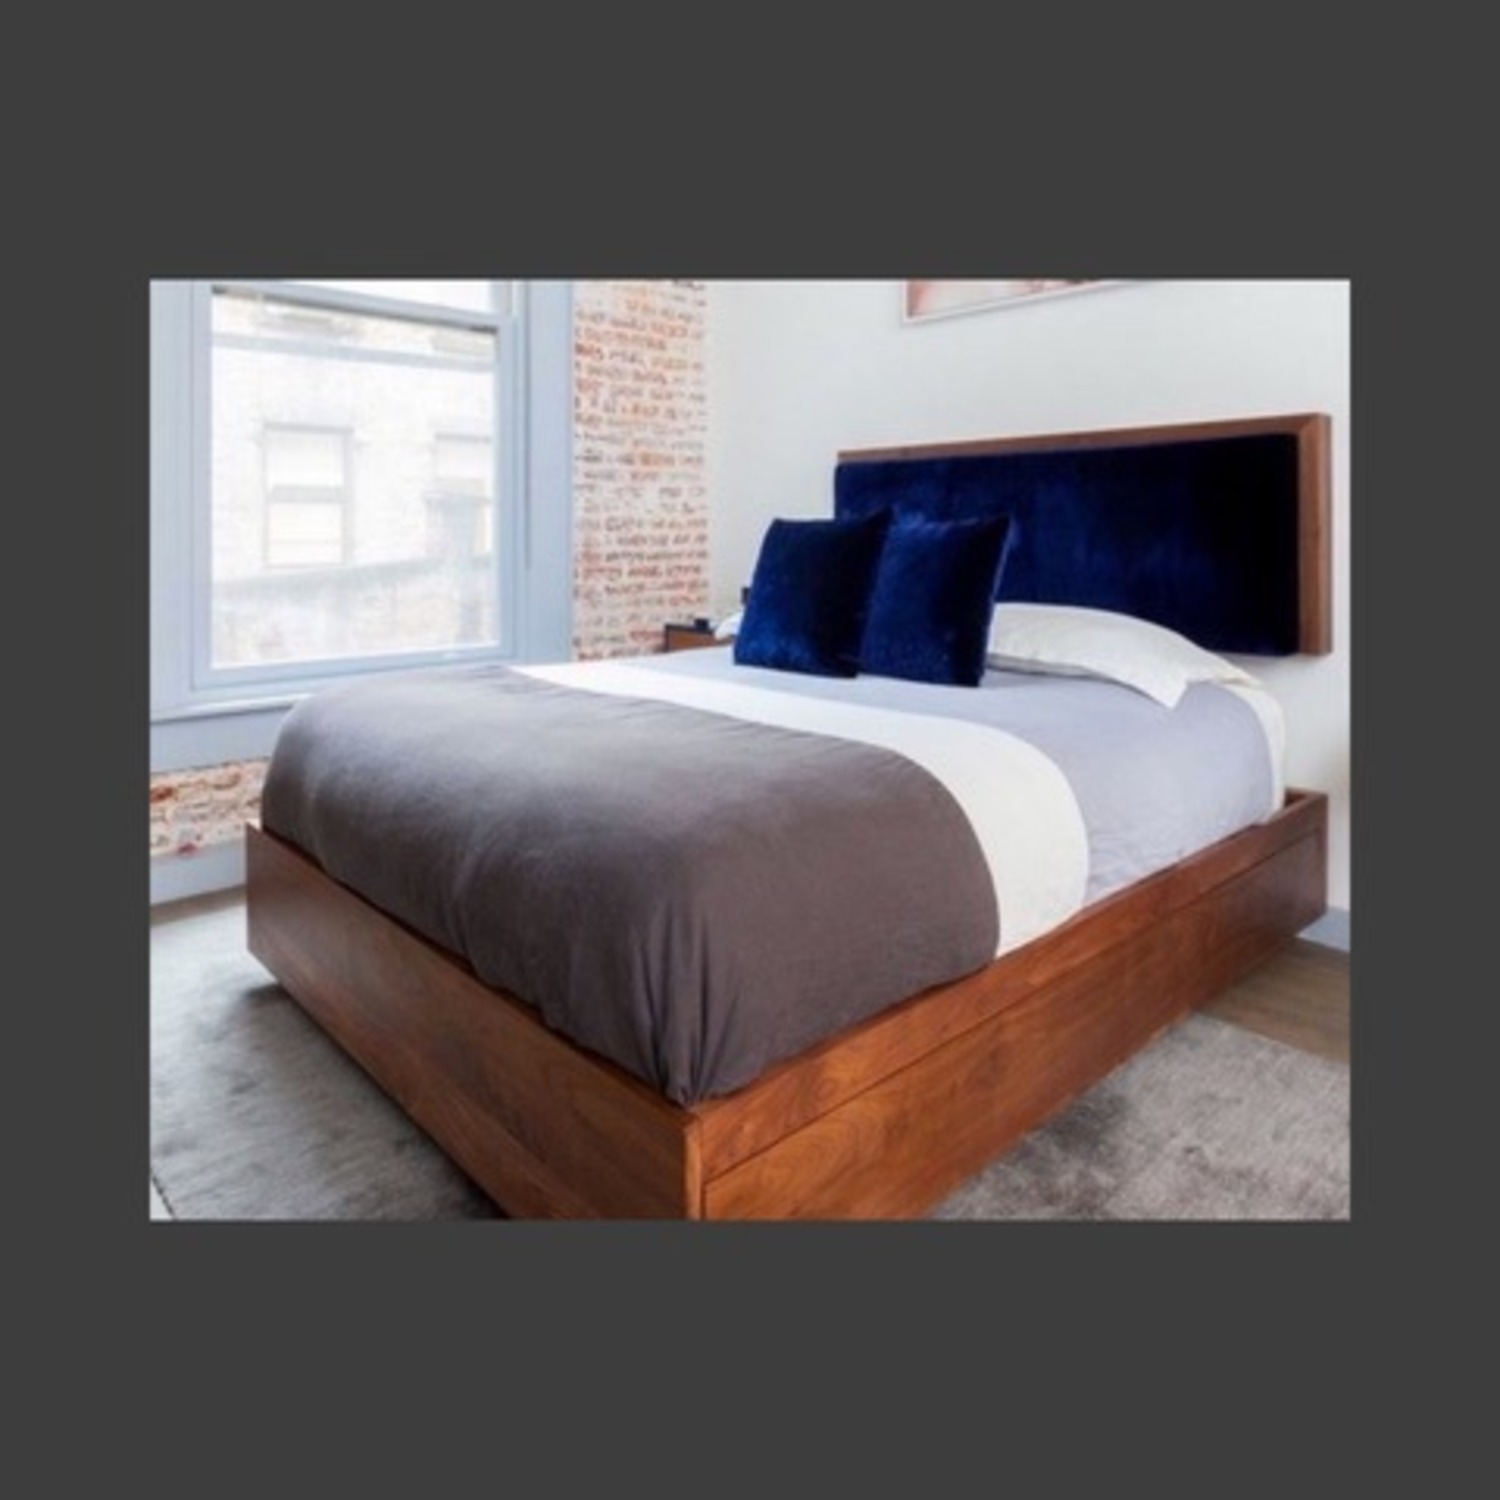 Italian Walnut Queen Sized Bed Frame - image-1